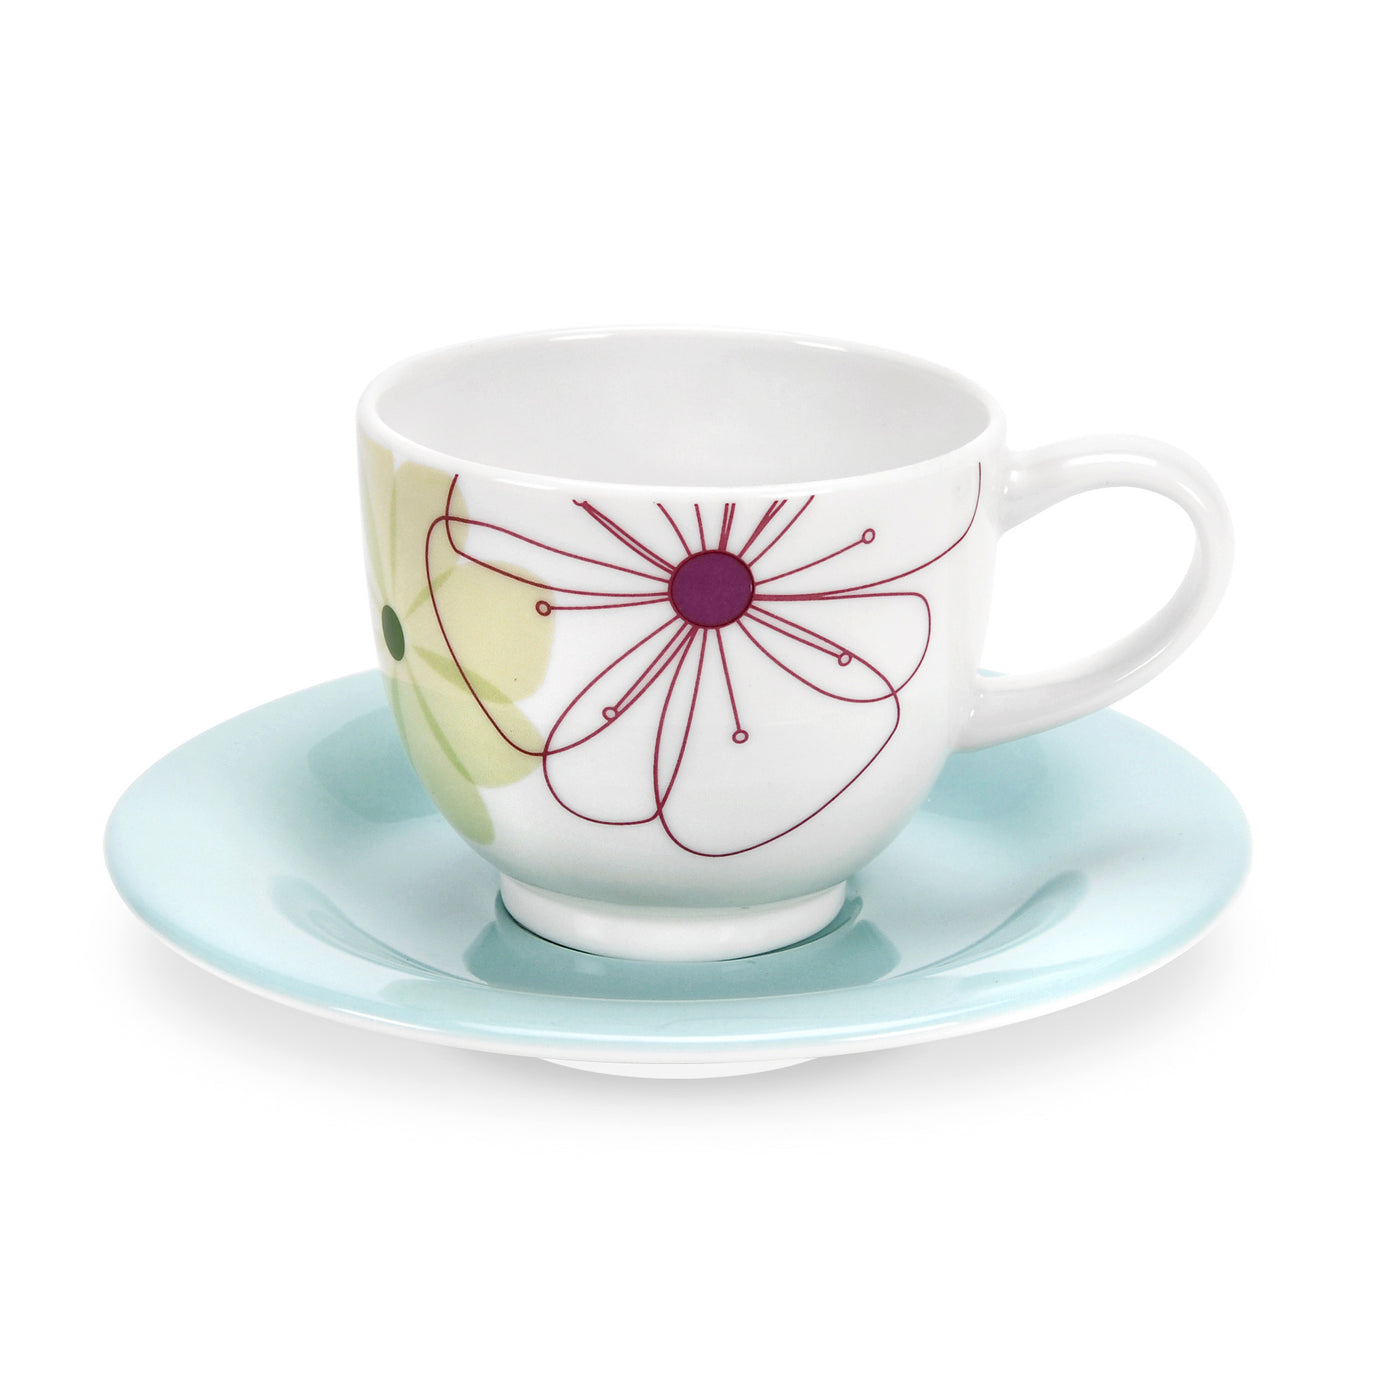 Espresso Cup & Saucer (Set of 2)